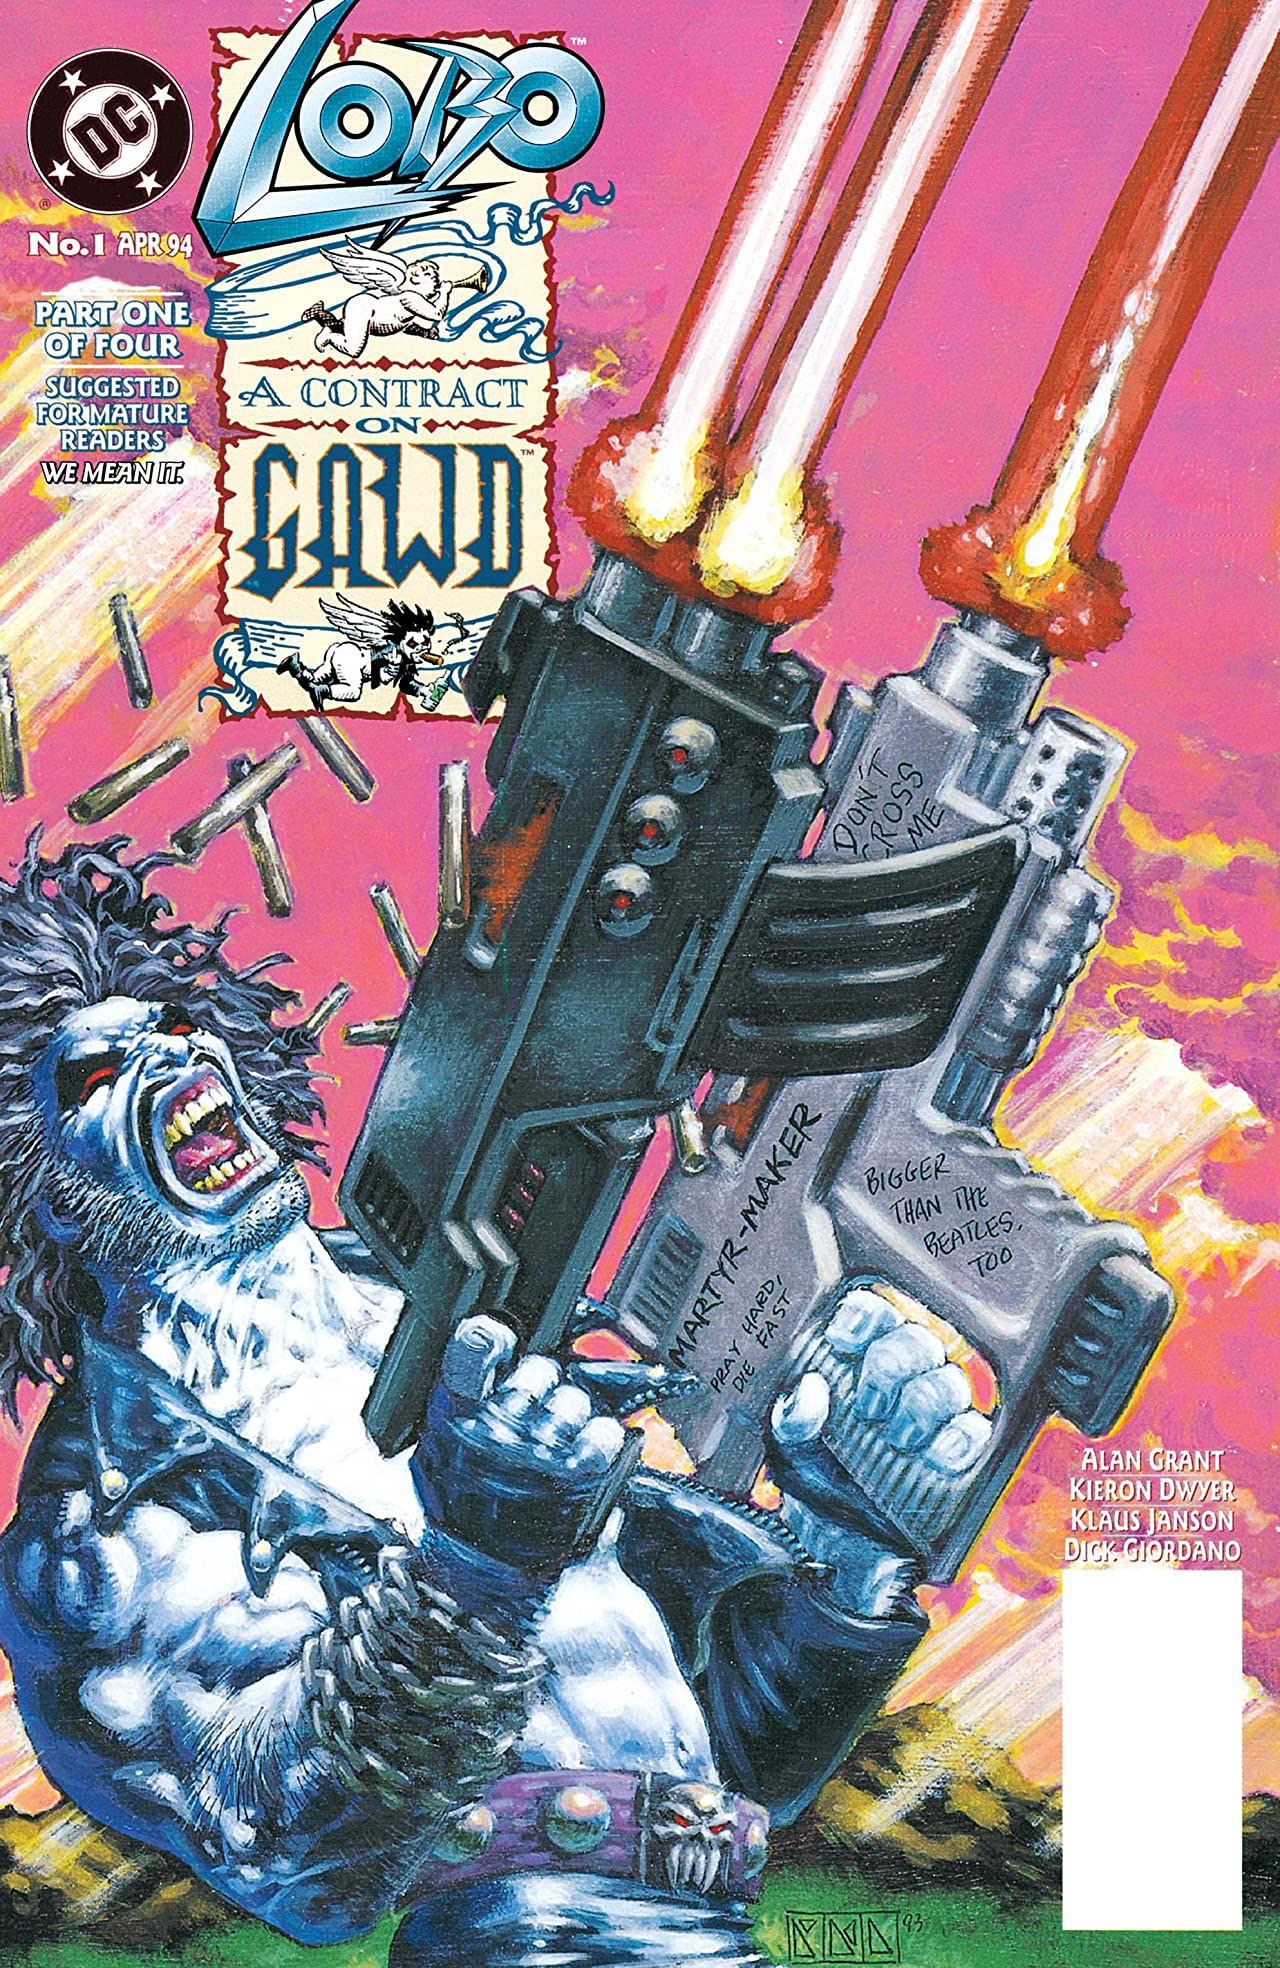 Lobo: A Contract on Gawd (1994) #1